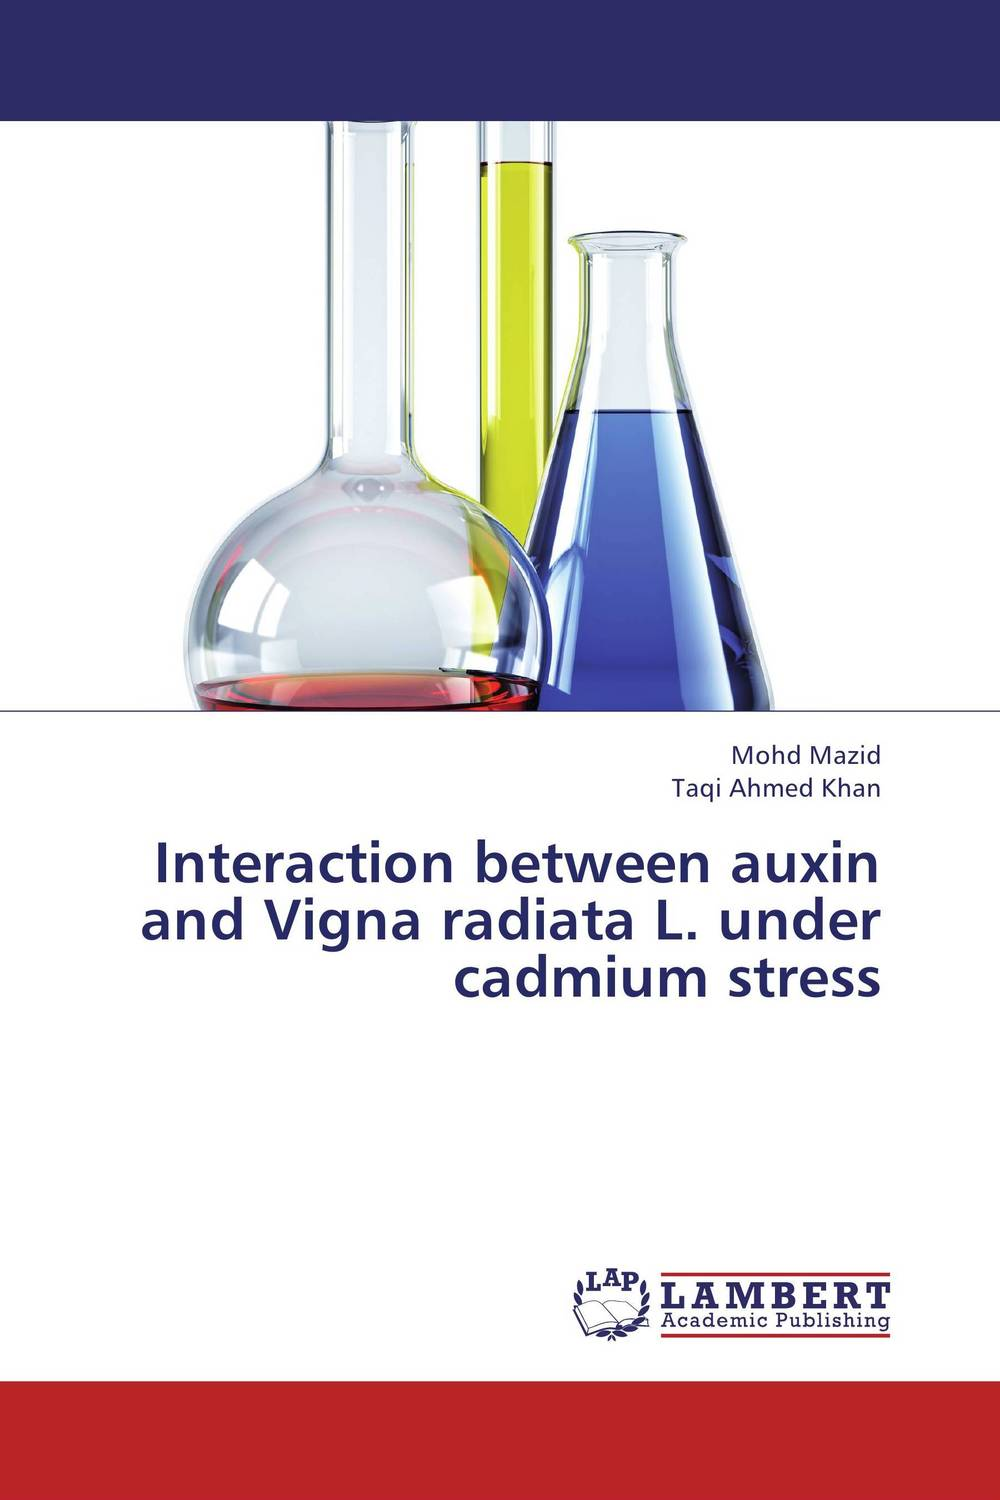 Interaction between auxin and Vigna radiata L. under cadmium stress mohd mazid and taqi ahmed khan interaction between auxin and vigna radiata l under cadmium stress